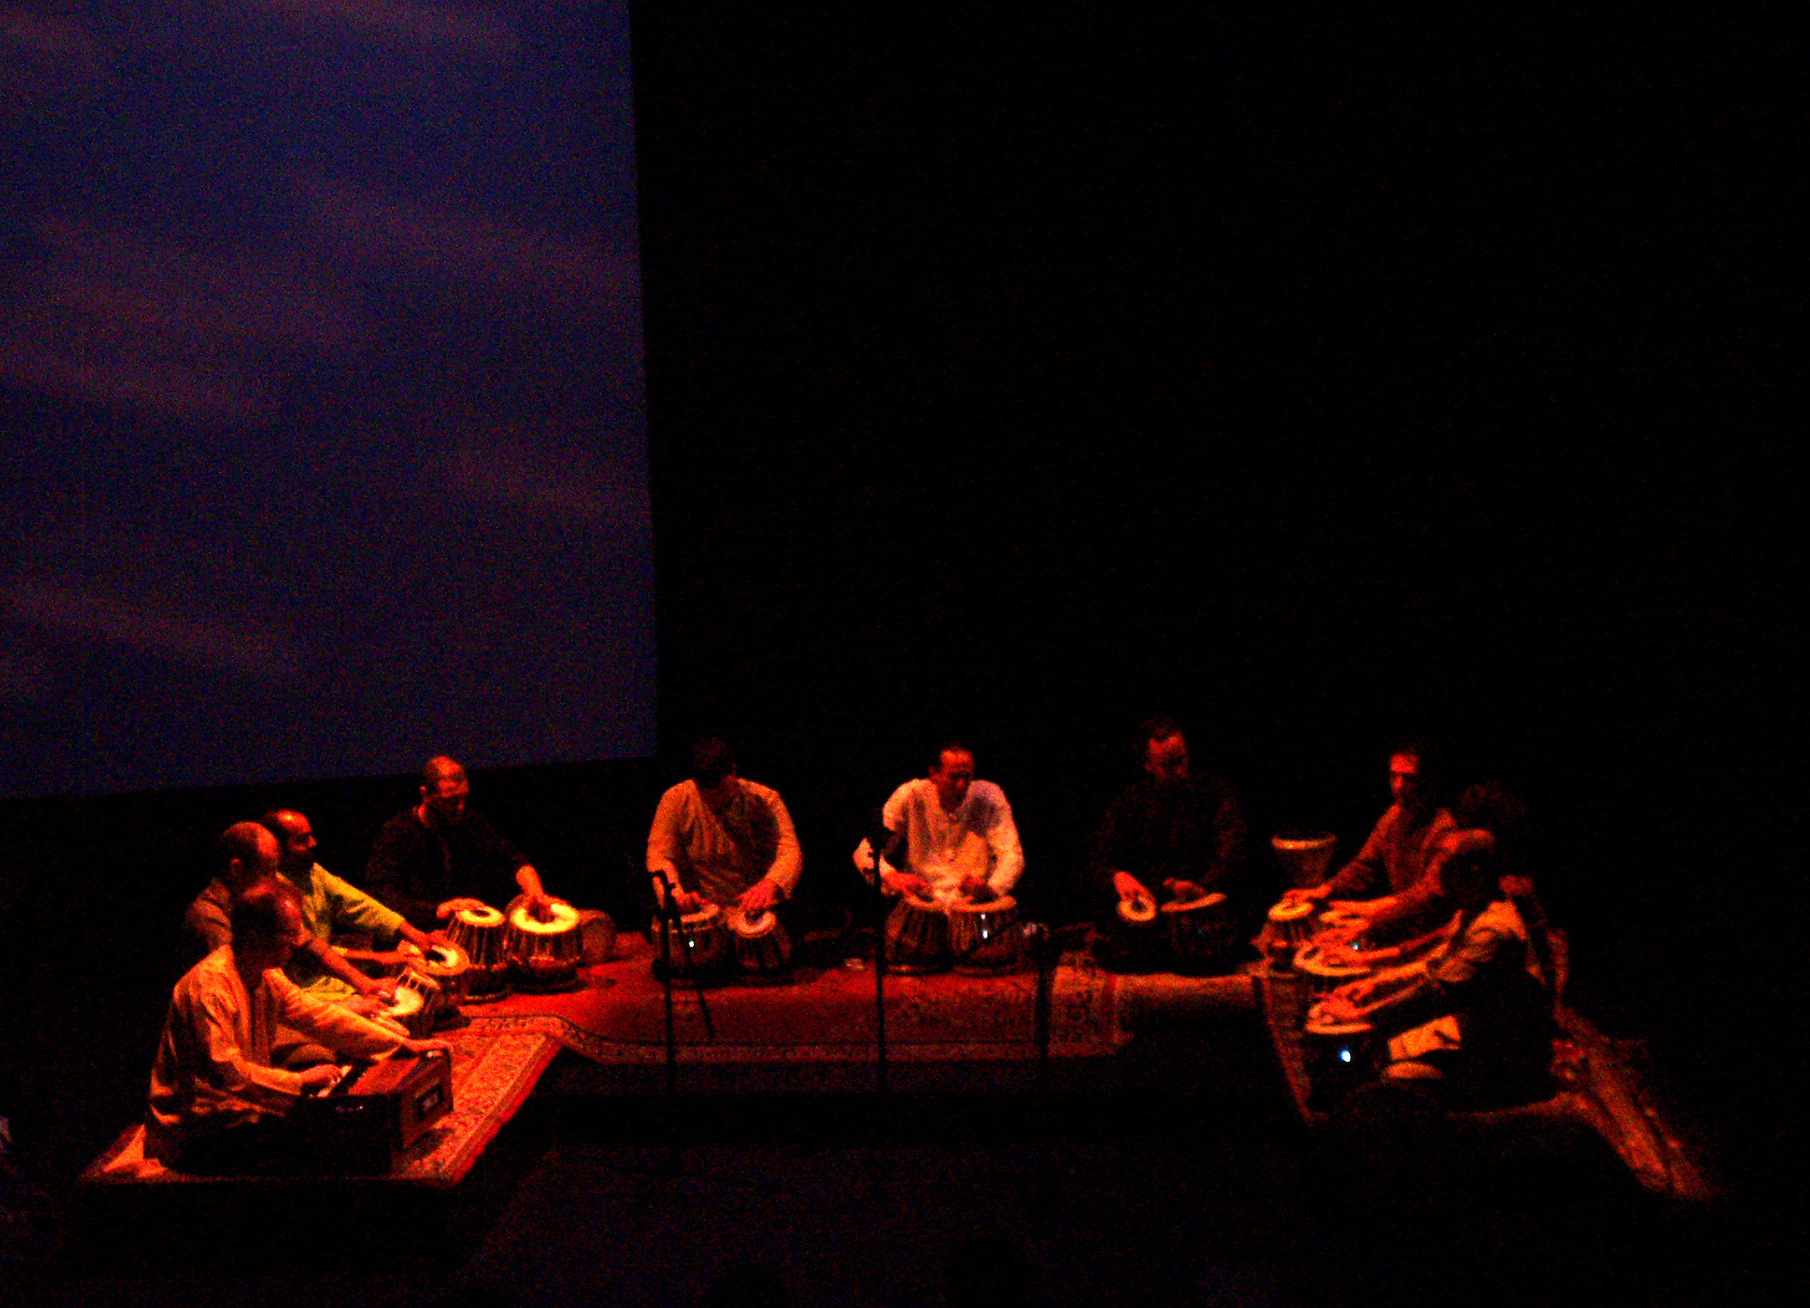 CalArts Tabla Ensemble at REDCAT, Los Angeles, CA. March 11th, 2006.  (L-R: Mike Robbins, T.J. Troy, Robin Sukhadia, Andrew Grueschow, Robert Elston, John Wash IV,  Austin Wrinkle, Frankie Bernstein, Alex Macy, Randy Gloss).